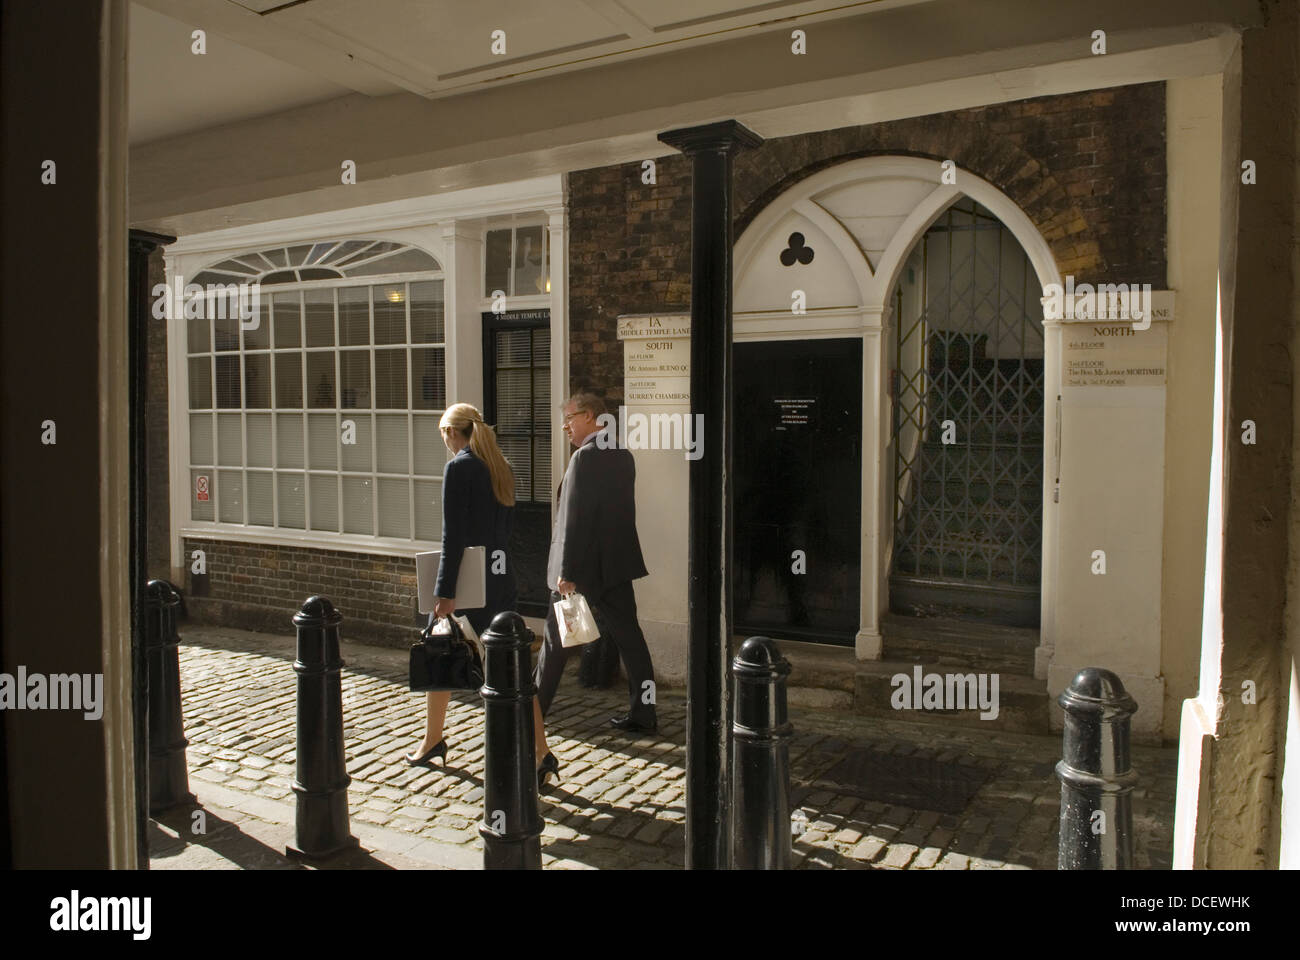 Middle Temple Lane. Middle Temple. Inns of Court London UK HOMER SYKES - Stock Image